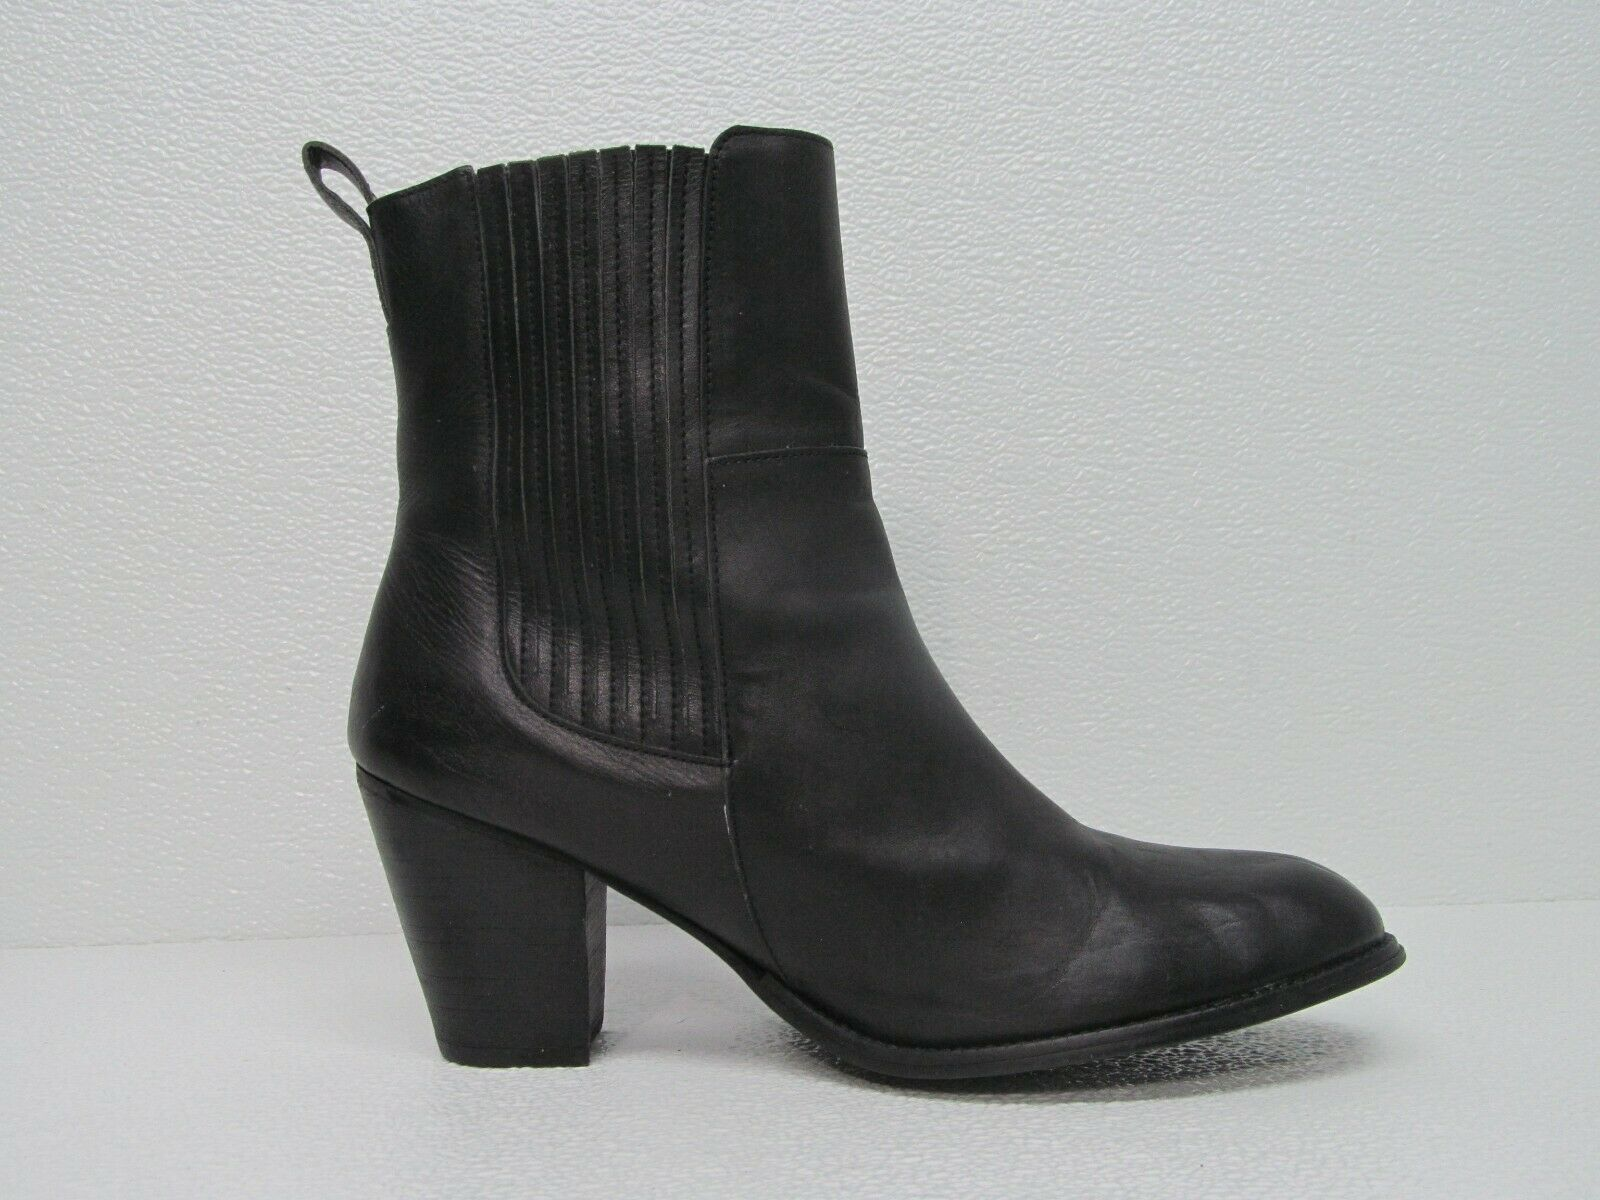 H&M Black Leather Heeled Chelsea Bootie Size Women's 9.5M